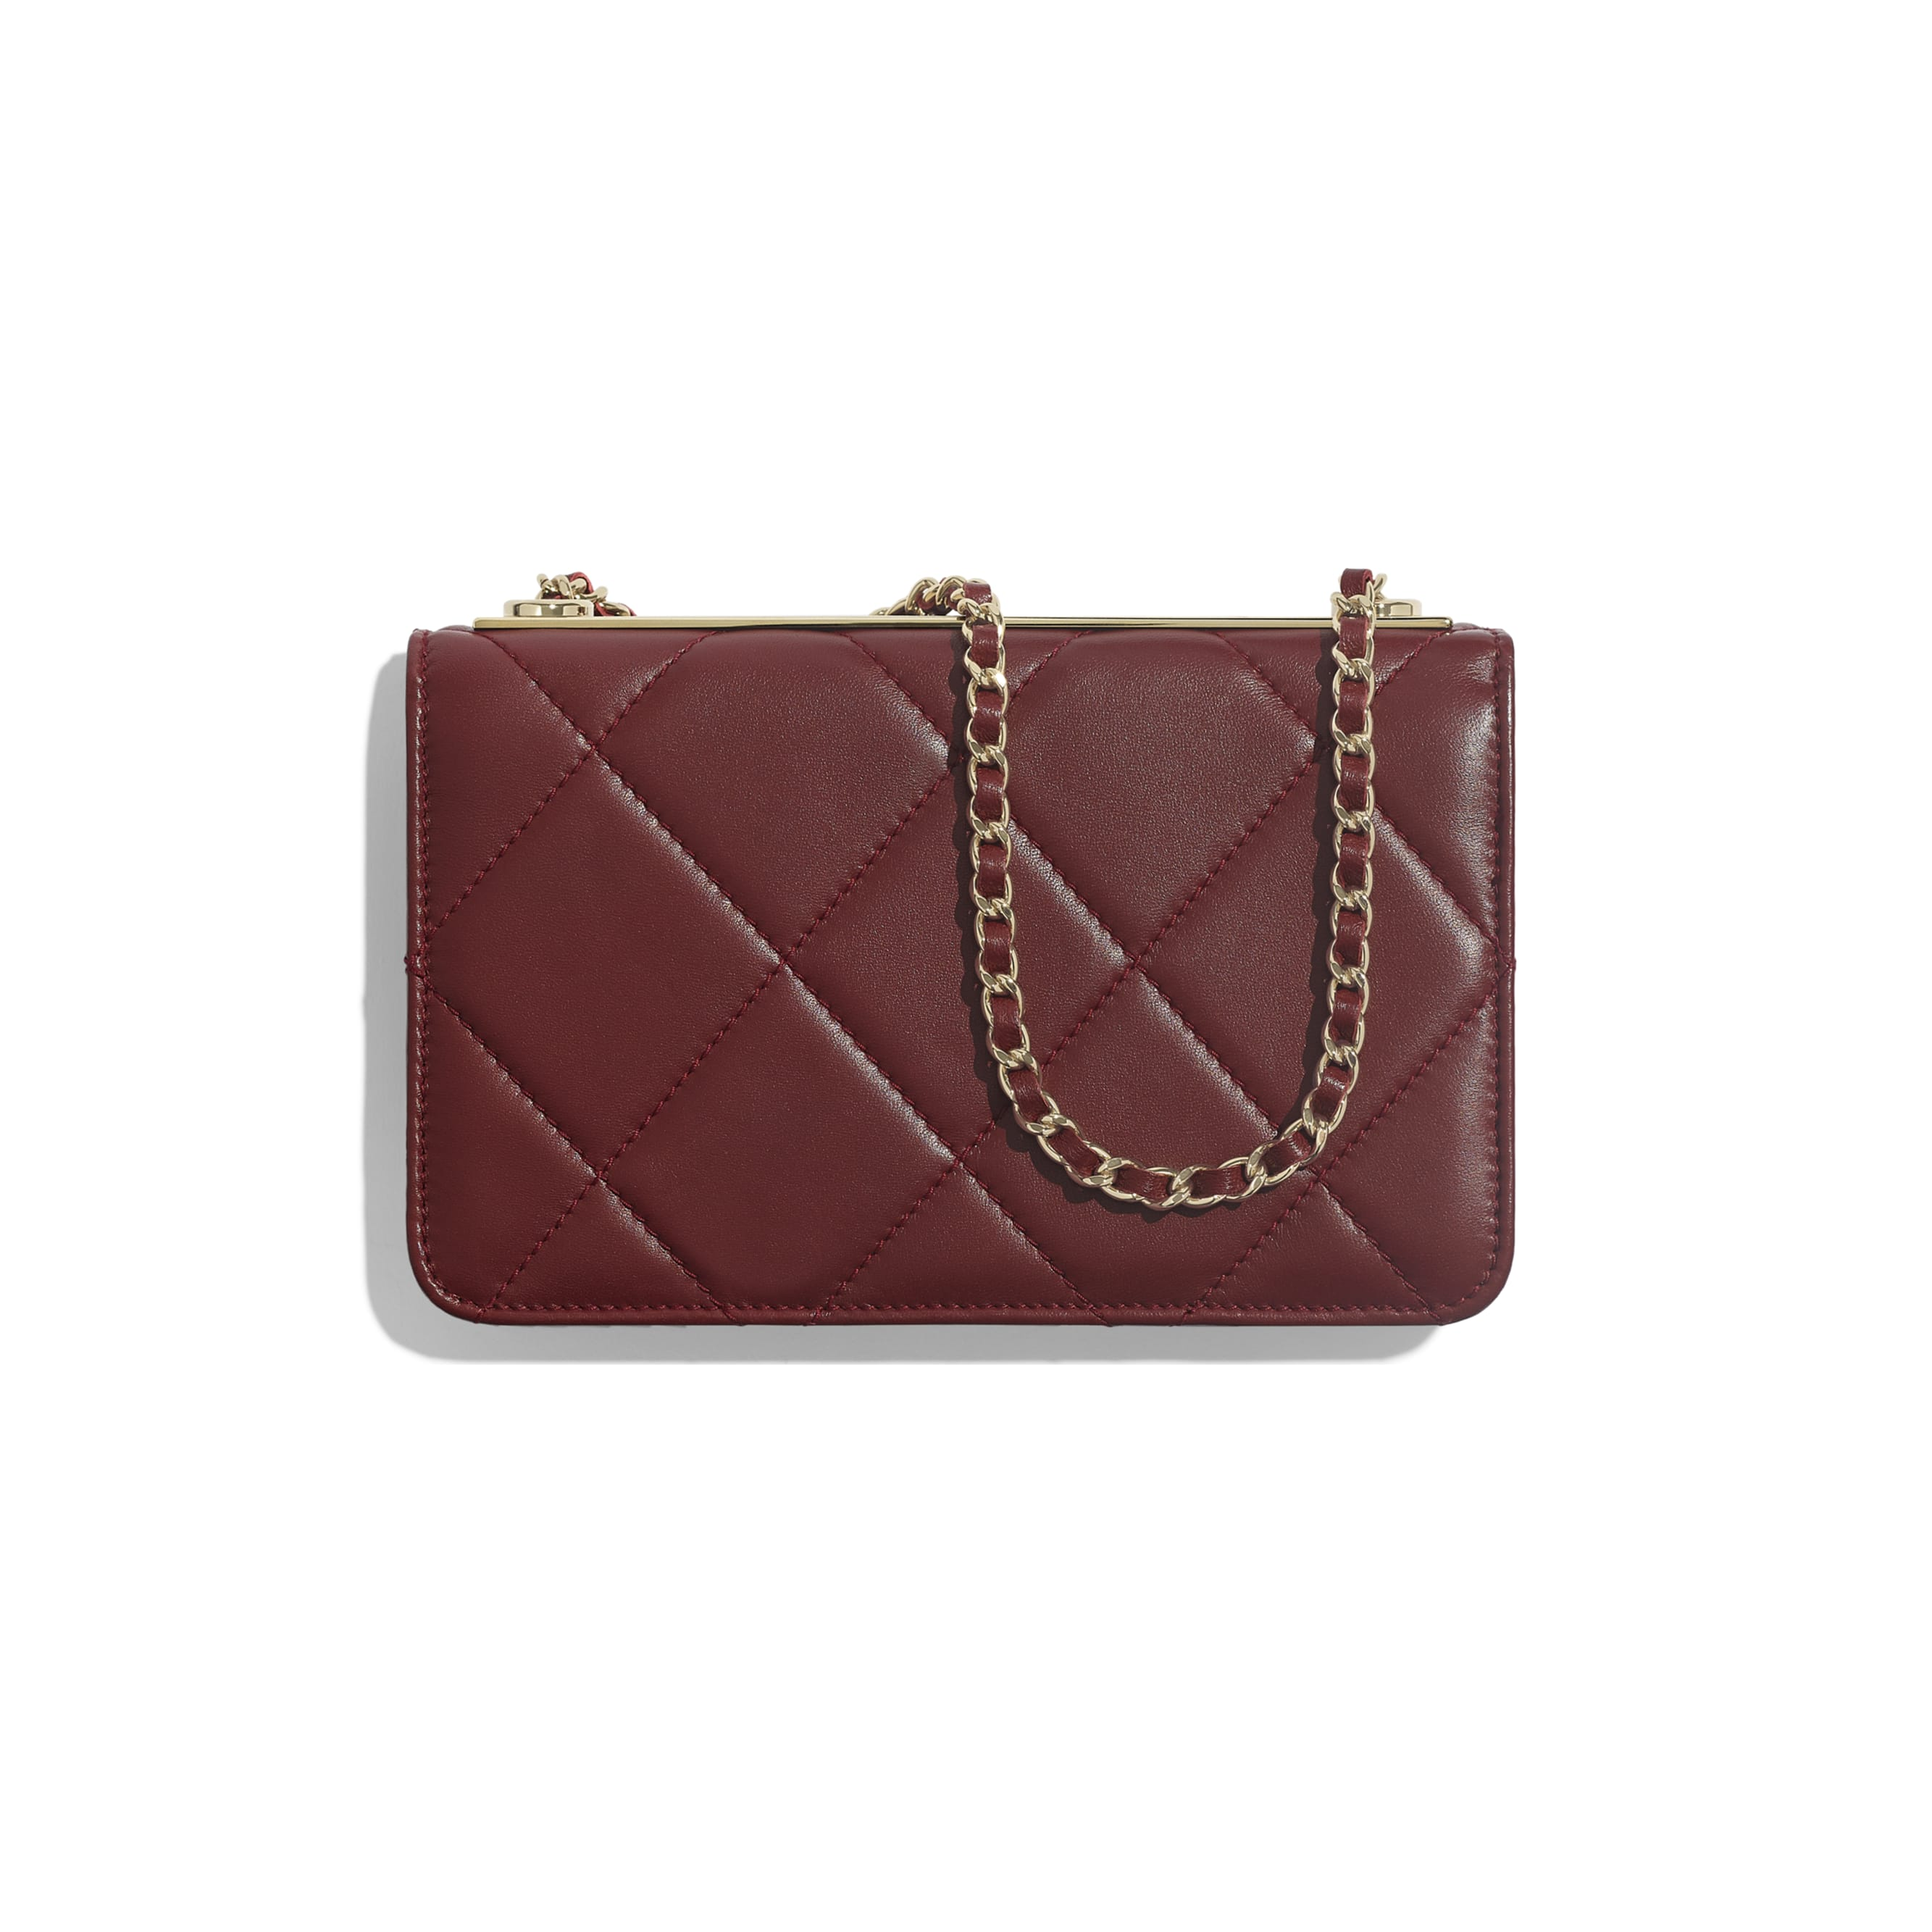 Wallet on Chain - Burgundy - Lambskin & Gold-Tone Metal - Alternative view - see standard sized version